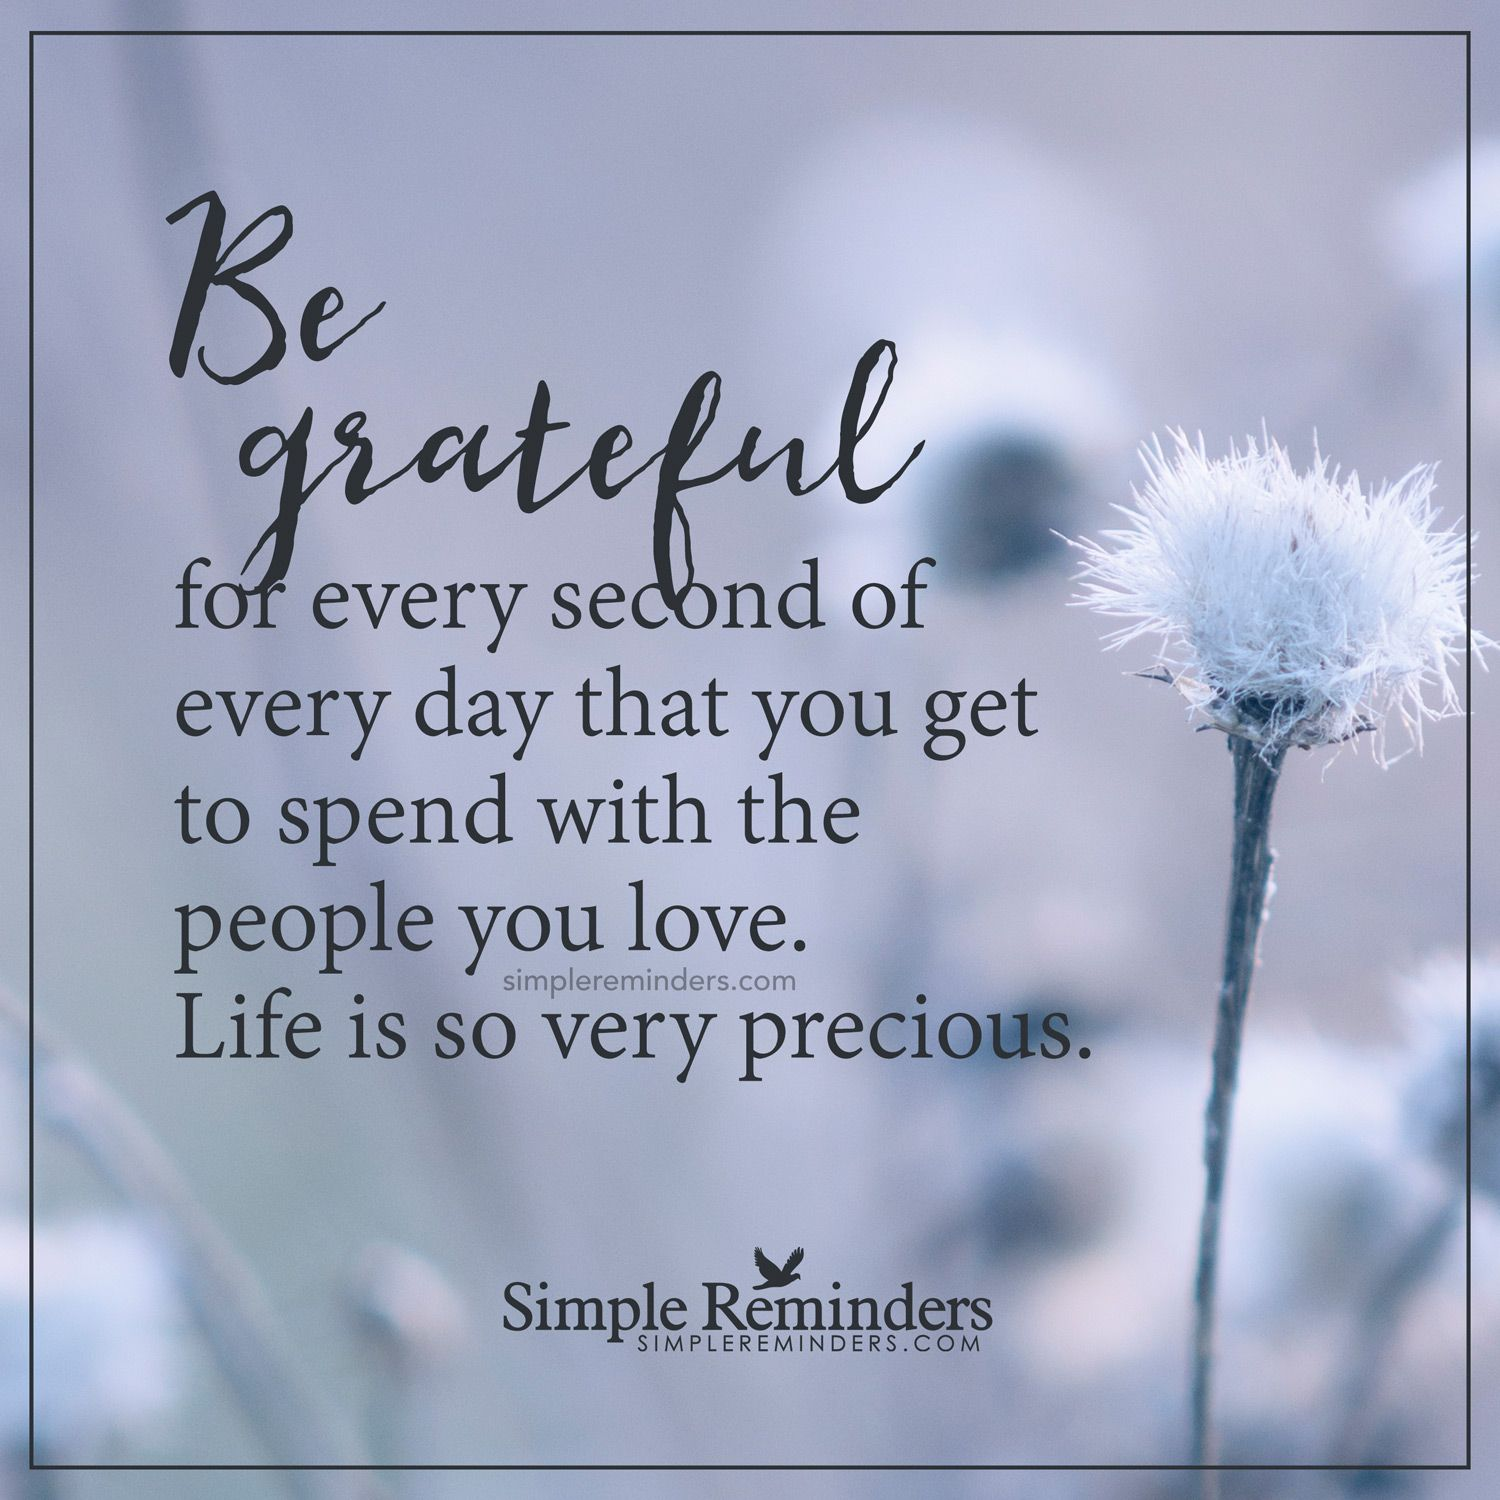 Love Quotes For Each Month Of The Year: Be Grateful For Every Second Be Grateful For Every Second